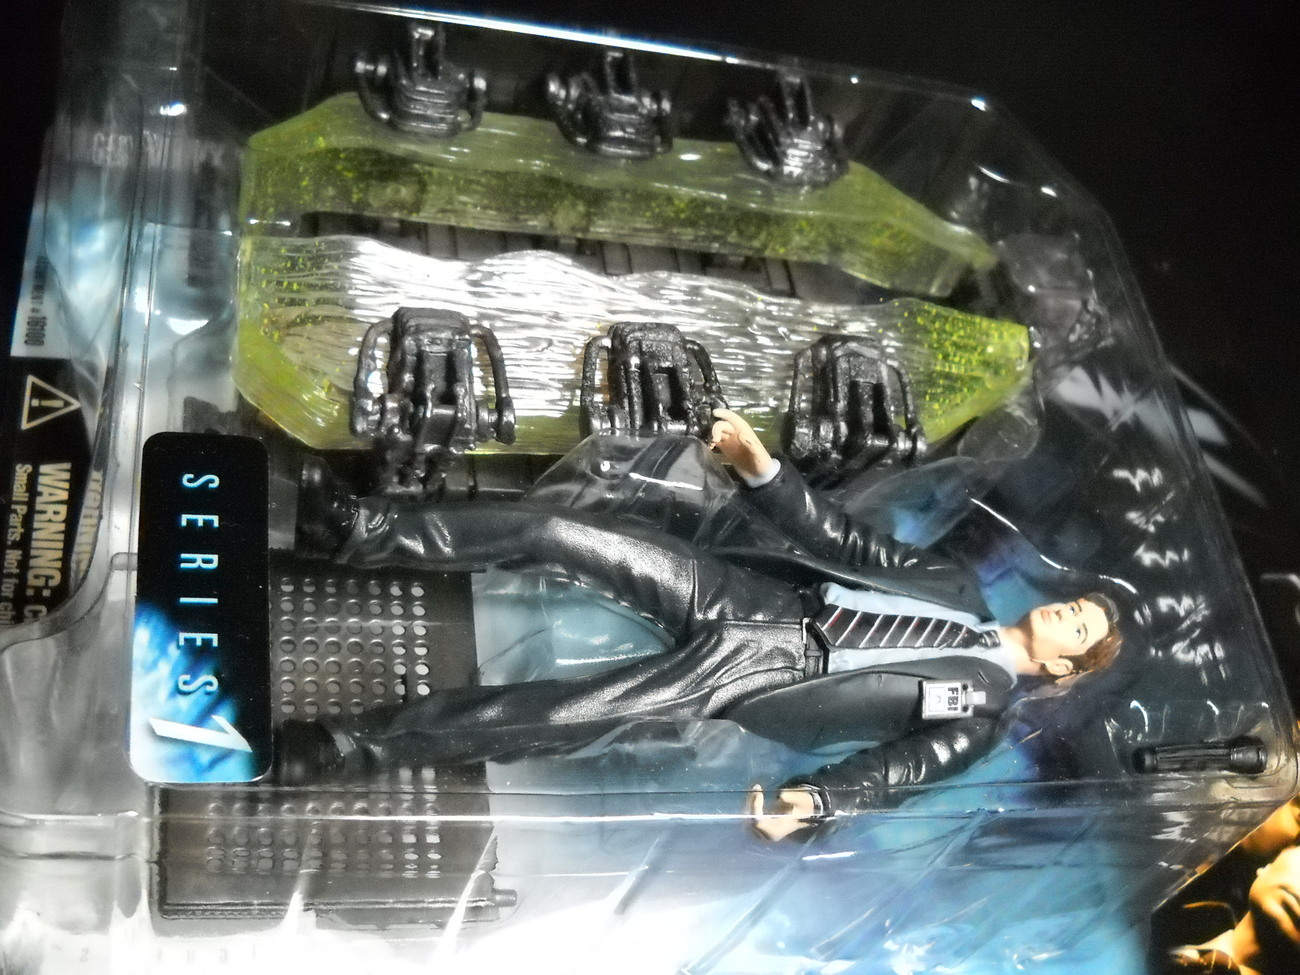 X Files McFarlane Toys Agent Fox Mulder with Human Body in Ice Pod 1998 Series 1